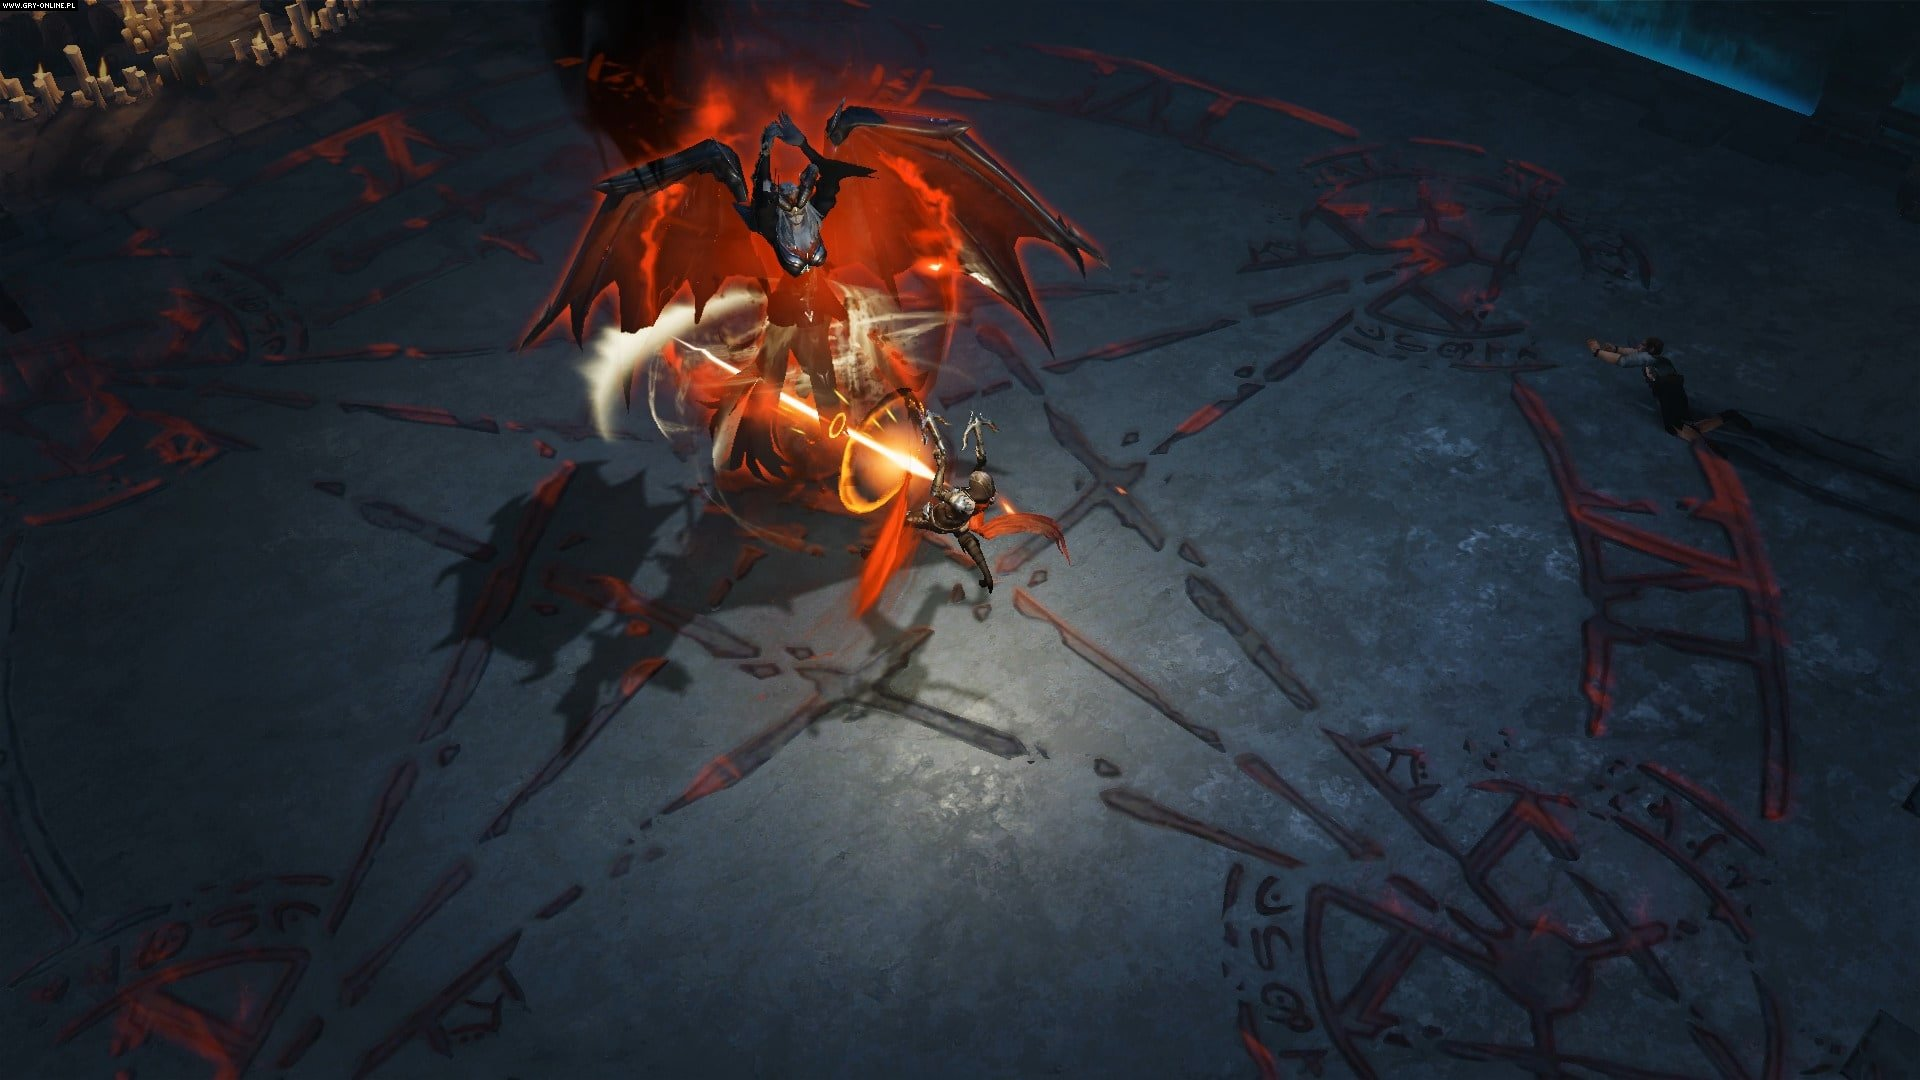 Diablo Immortal iOS, AND Games Image 34/36, NetEase, Activision Blizzard